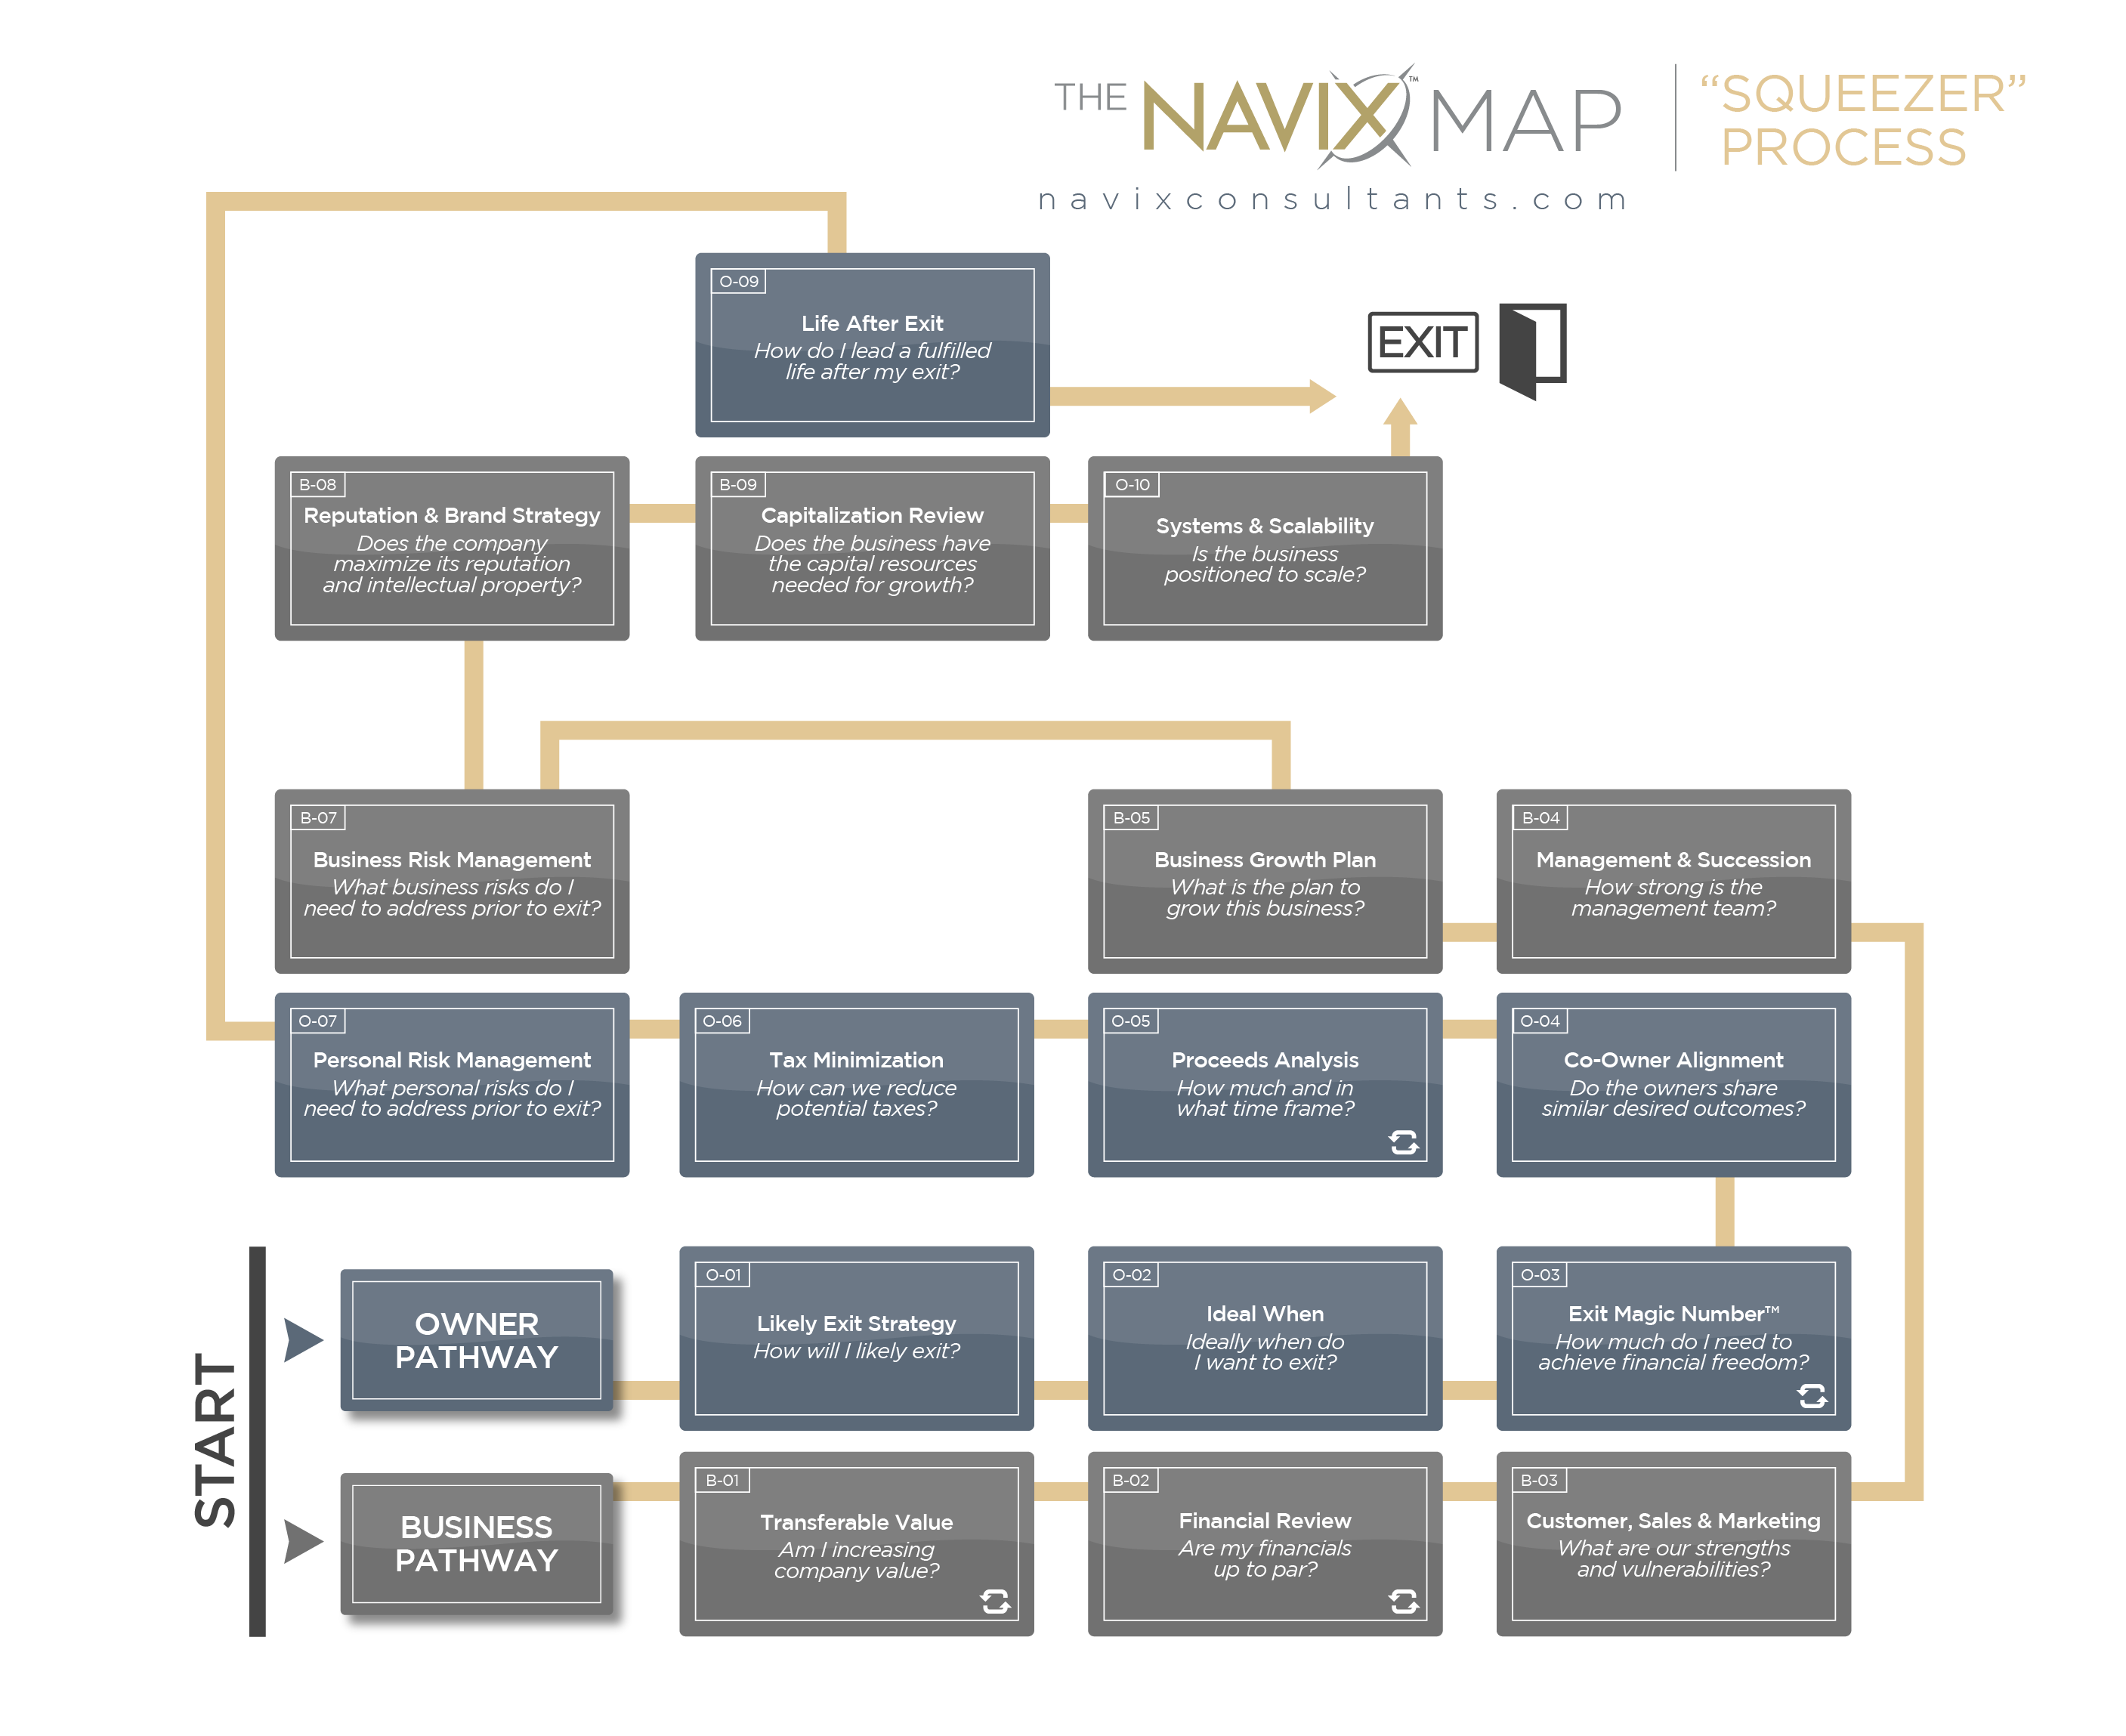 The NAVIX Map | The Squeezer Process